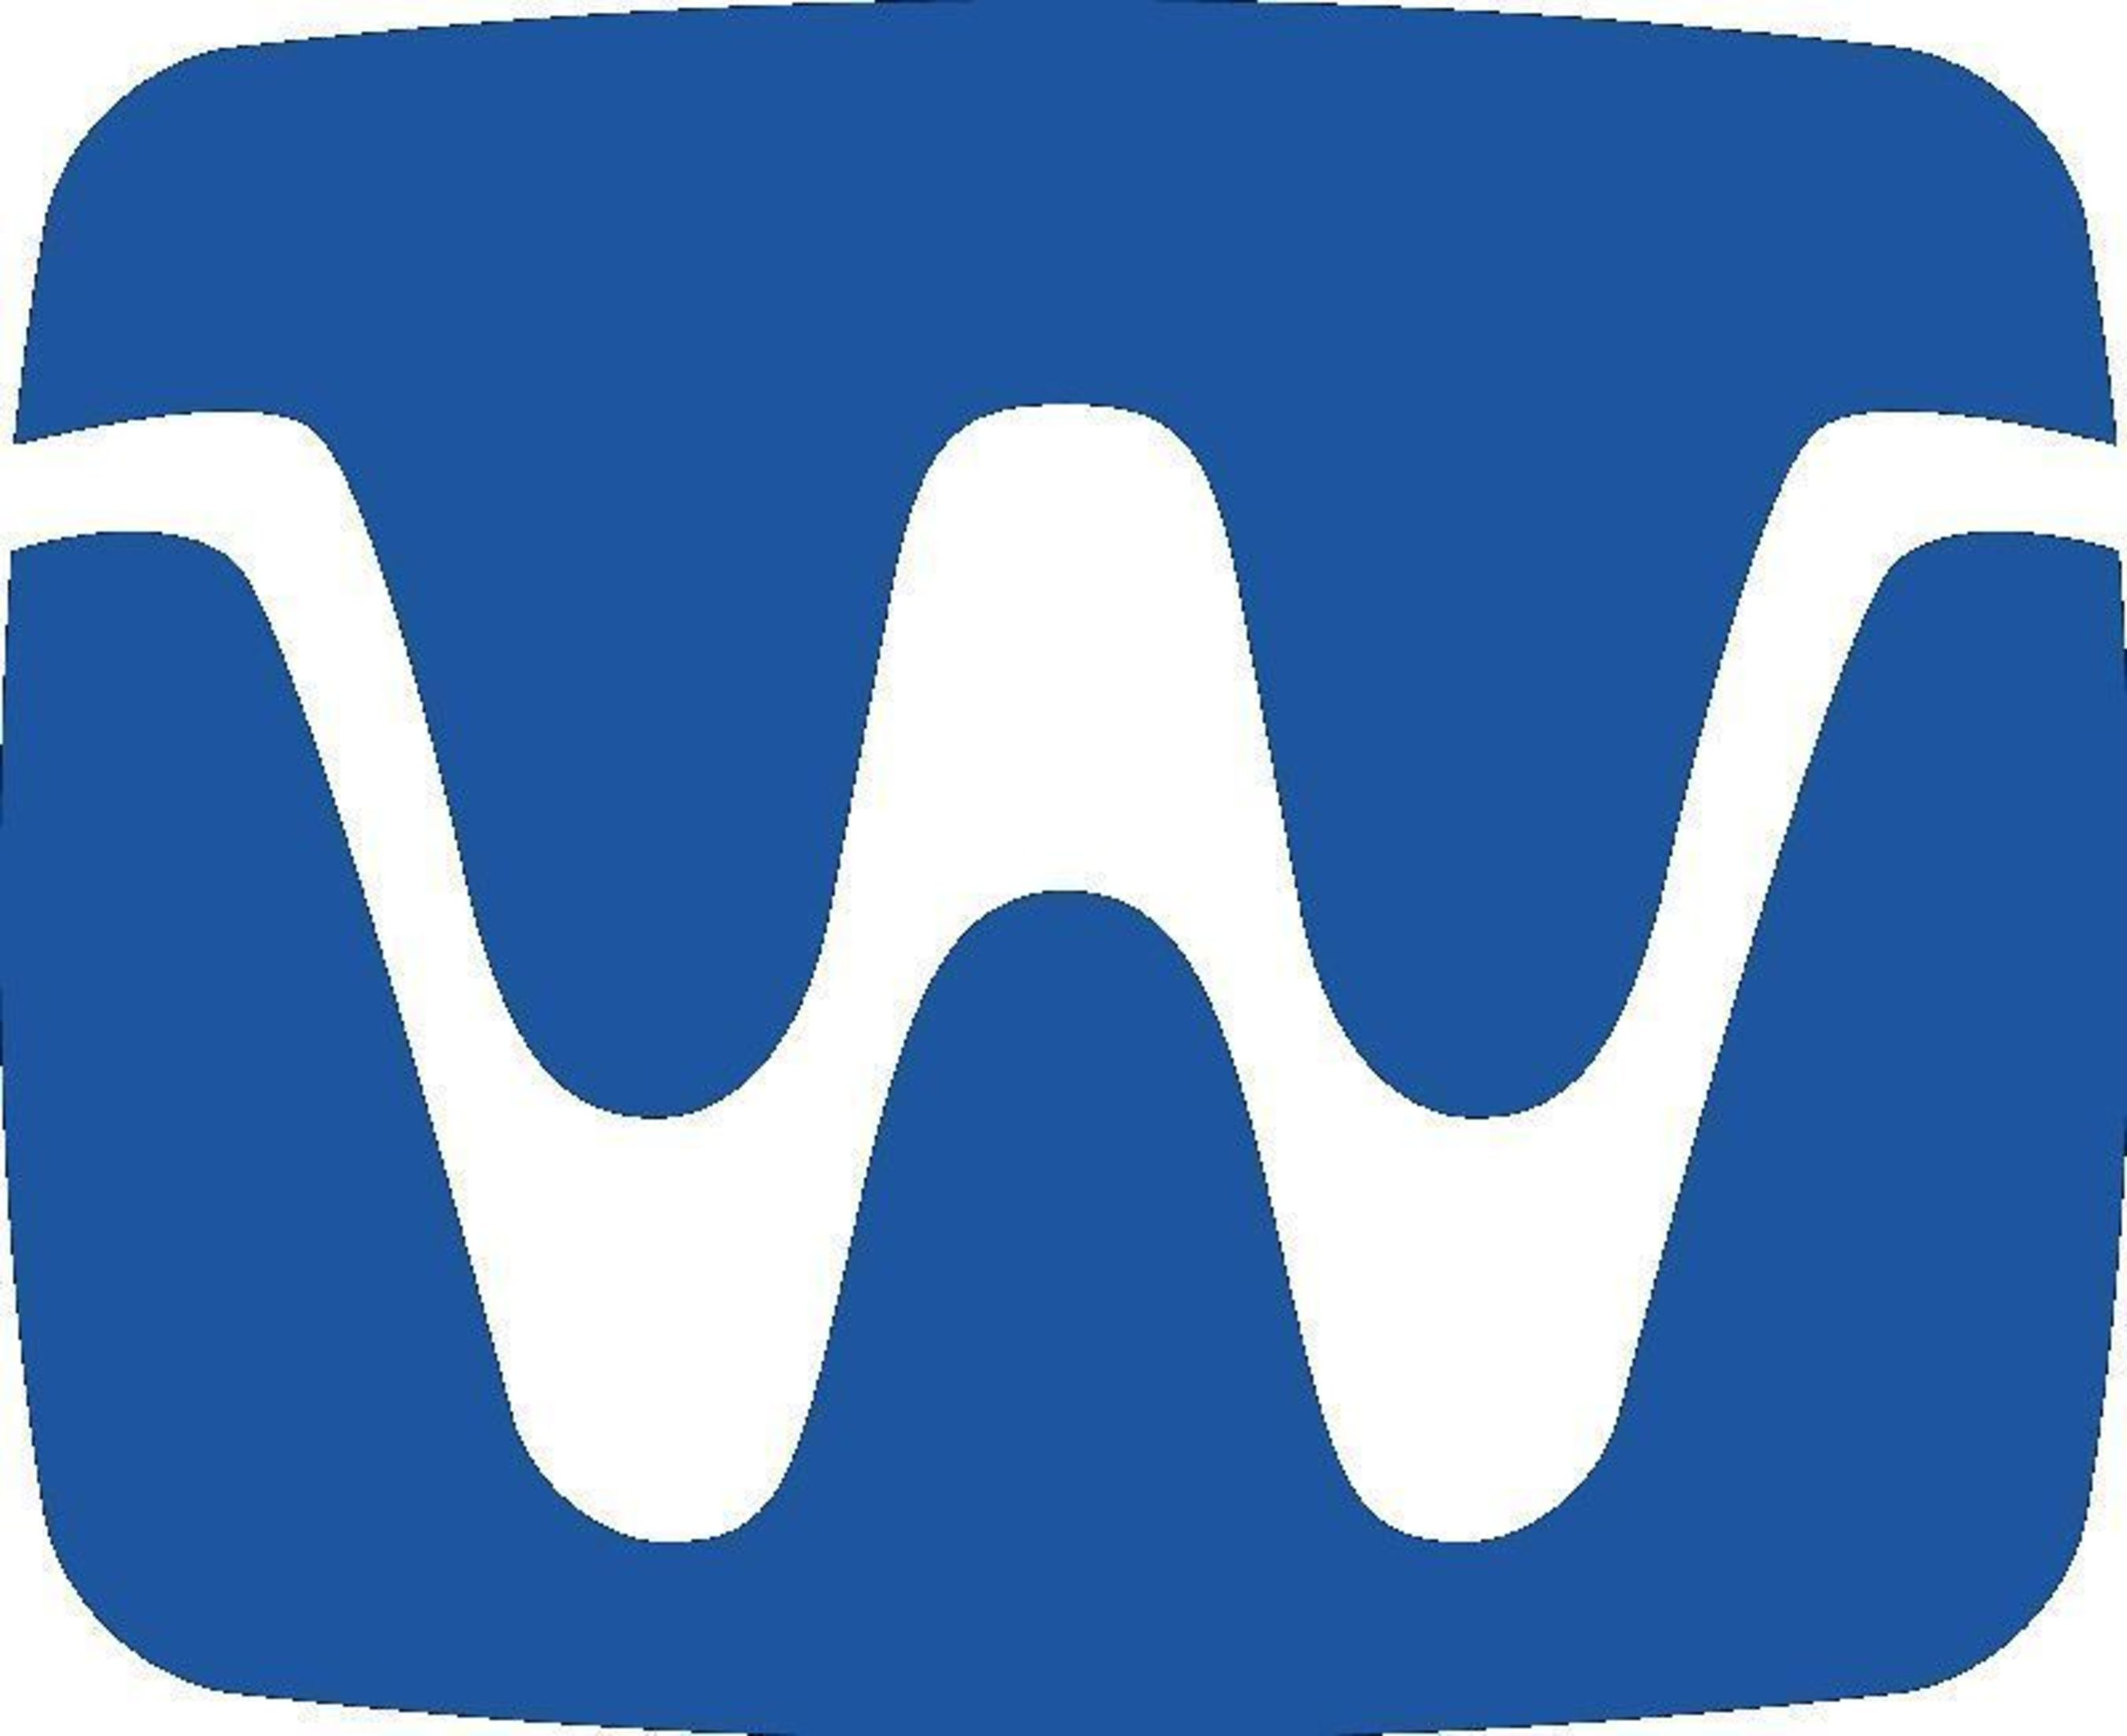 iWedia Appoints David Paul to Lead its Business Development Activities in Latin America